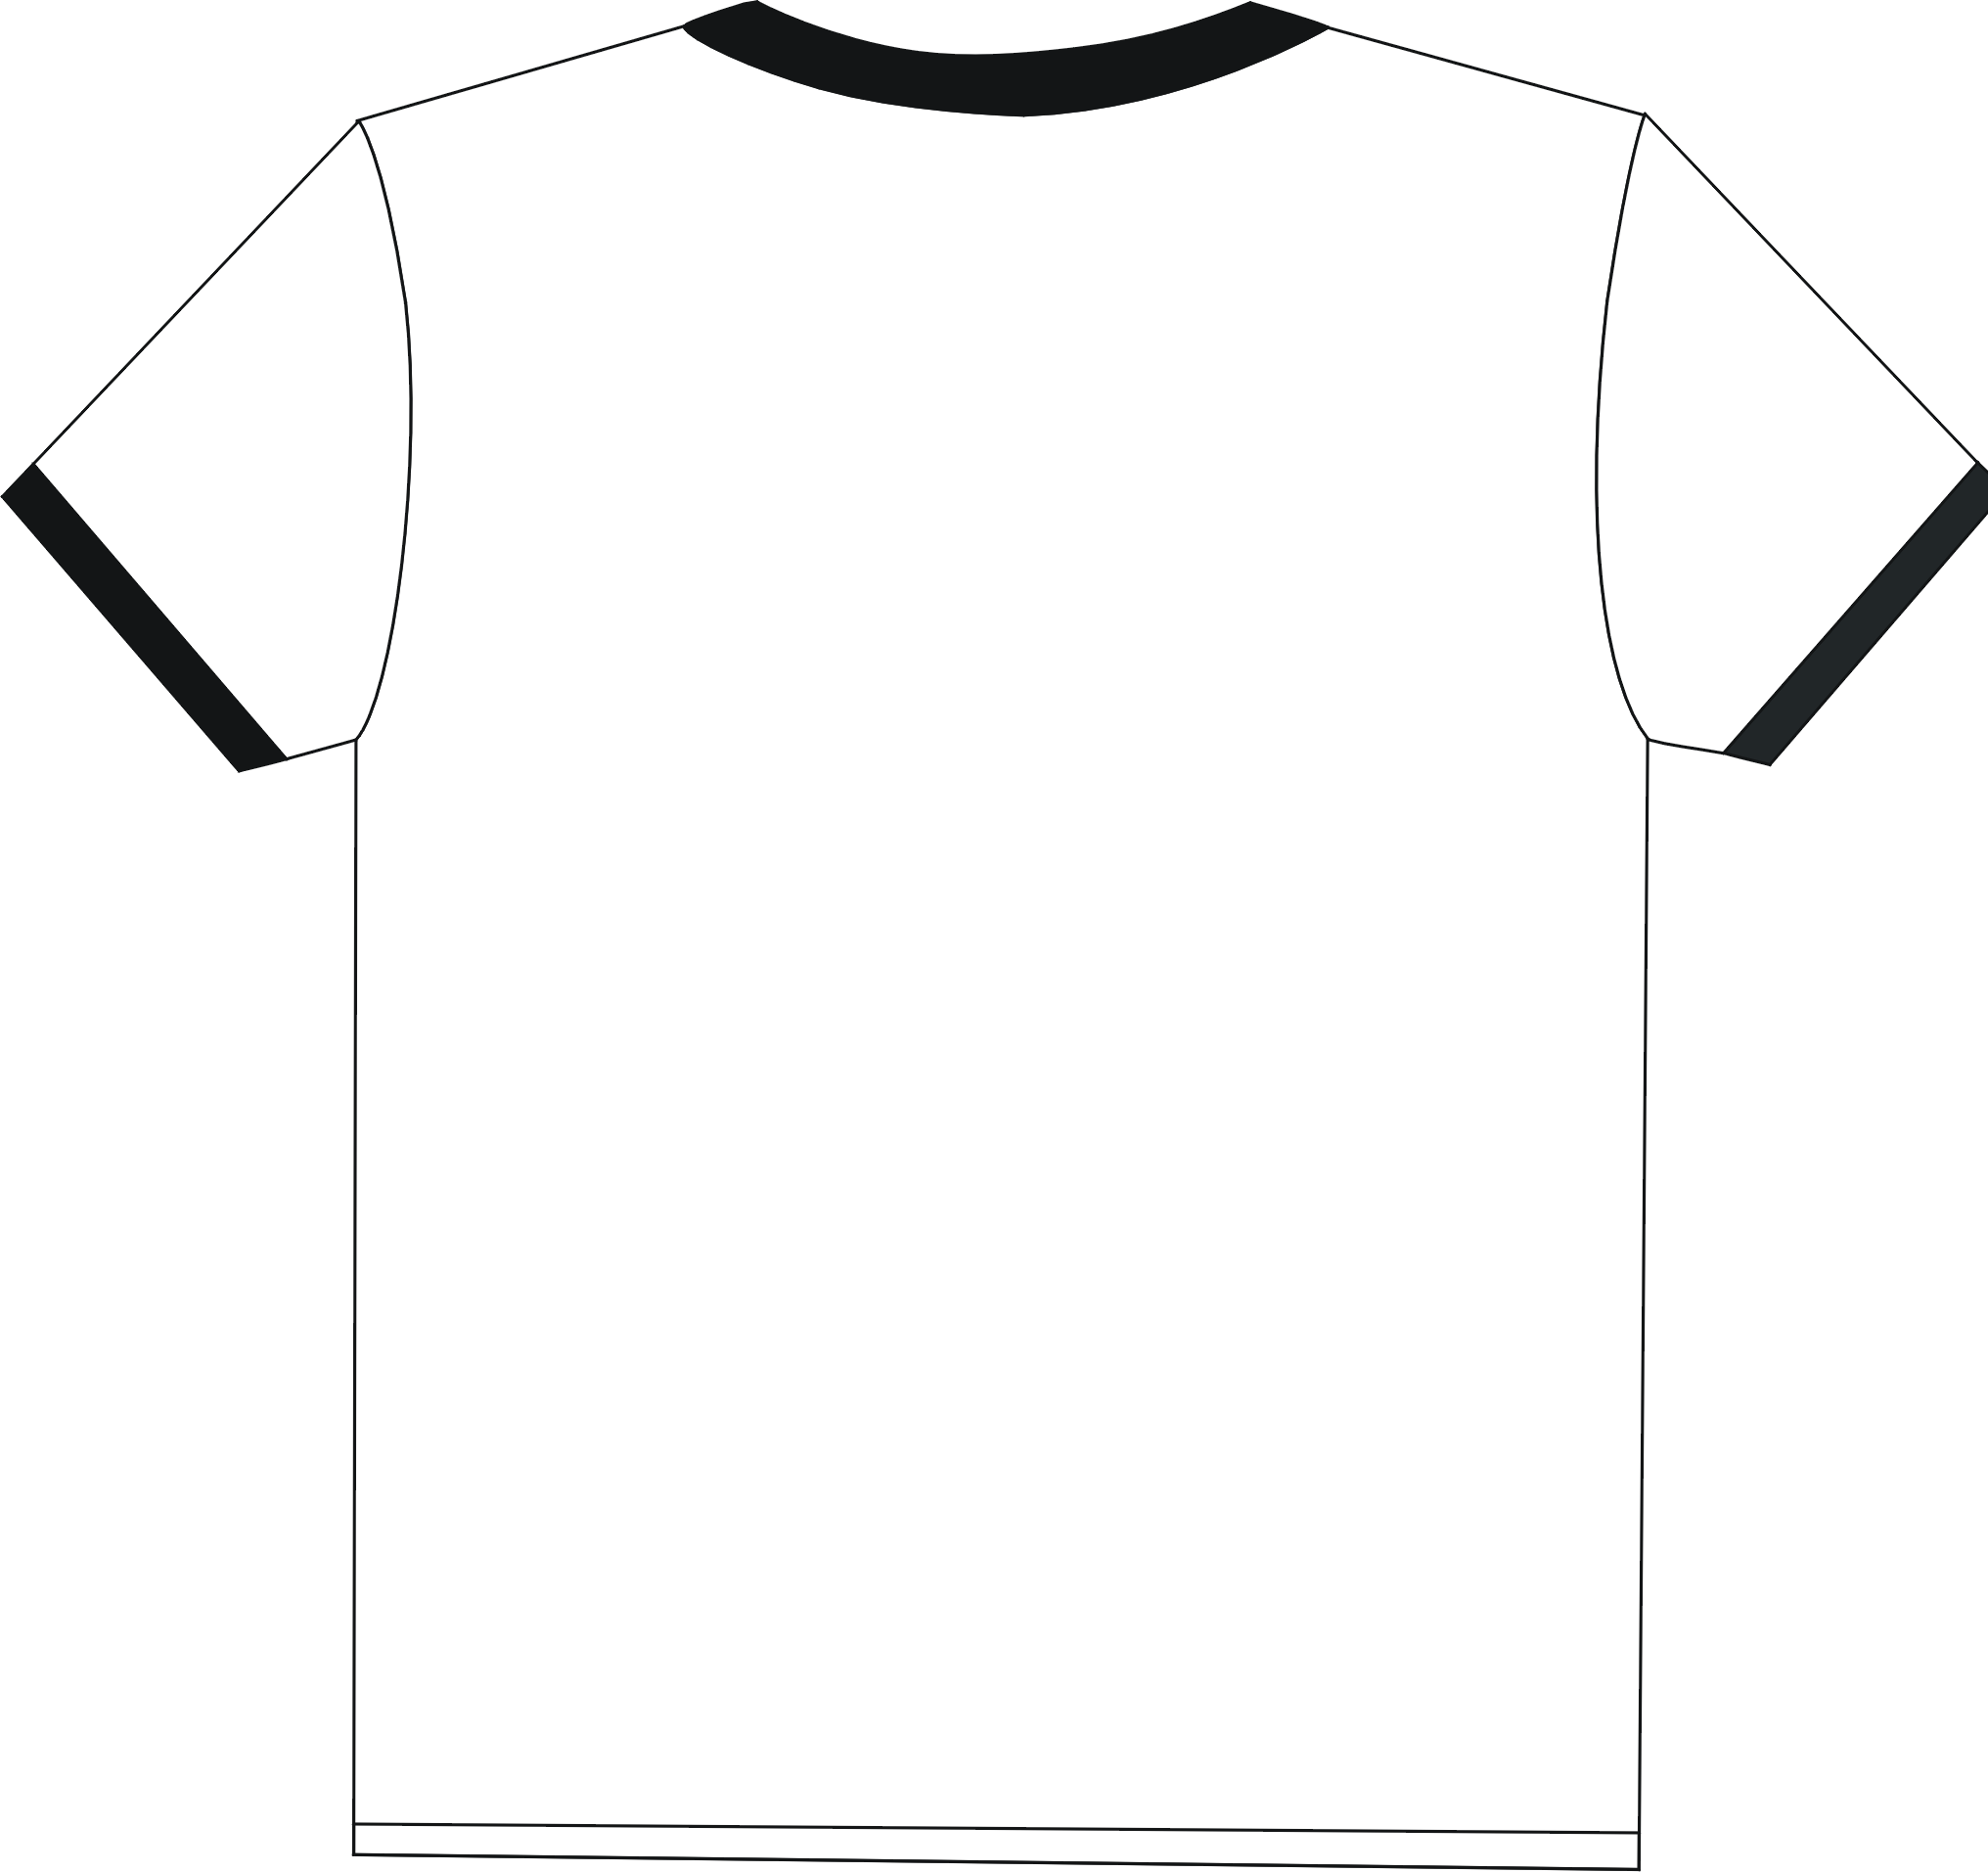 Clipart football jersey svg freeuse library Shirt Clipart blank - Free Clipart on Dumielauxepices.net svg freeuse library